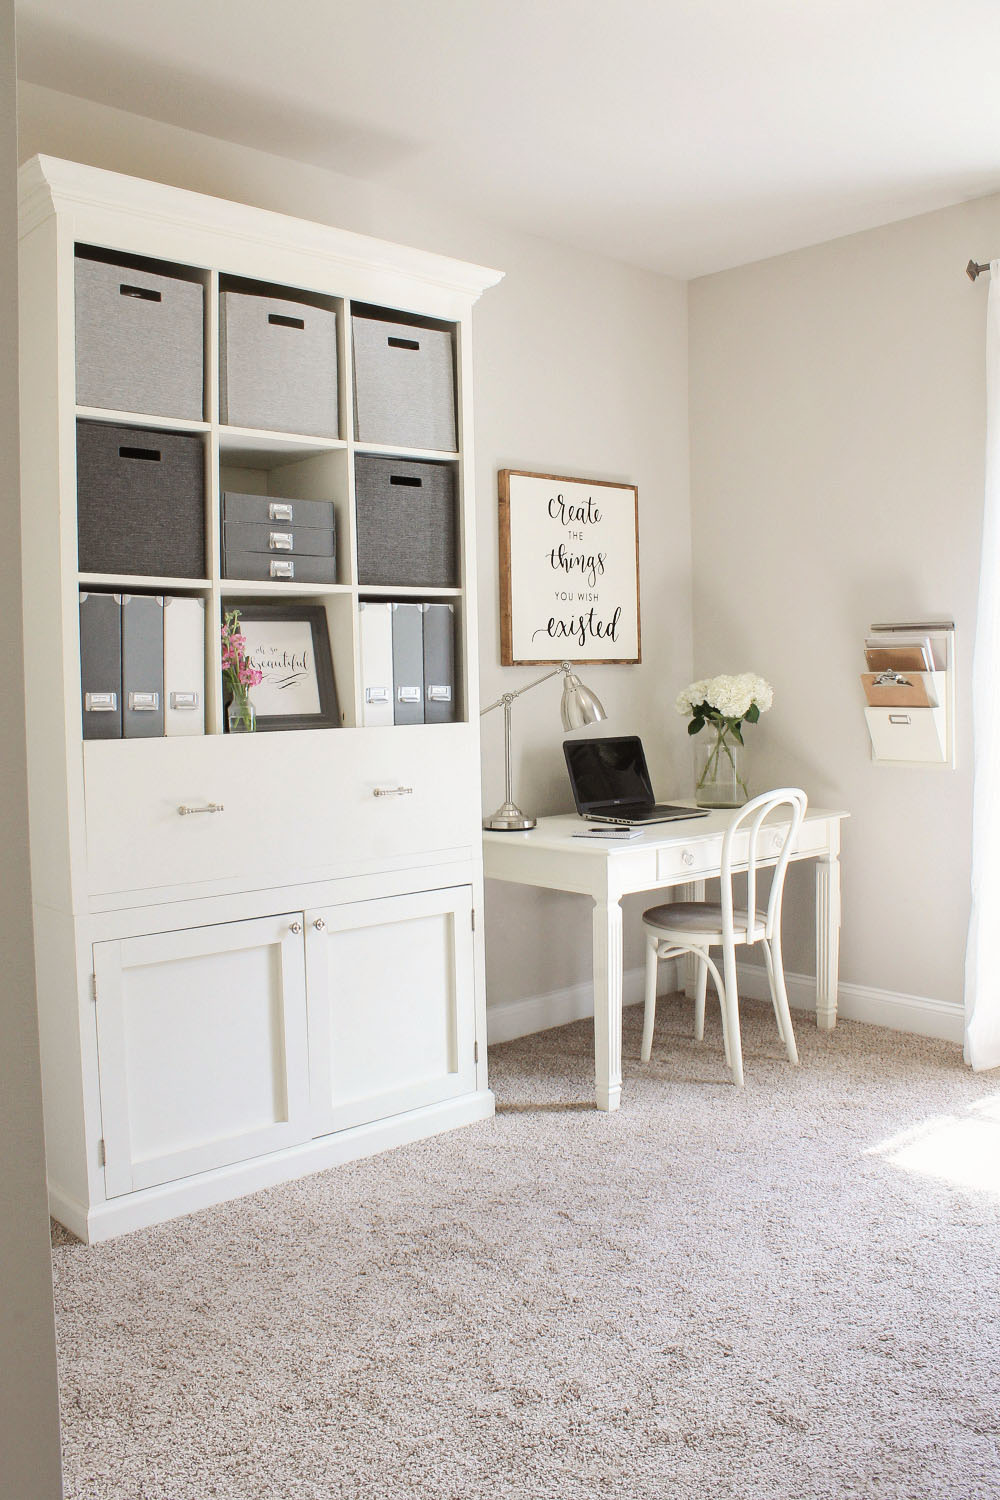 Colorful Mary Kay Home Office Inspiration - Home Decorating Ideas ...